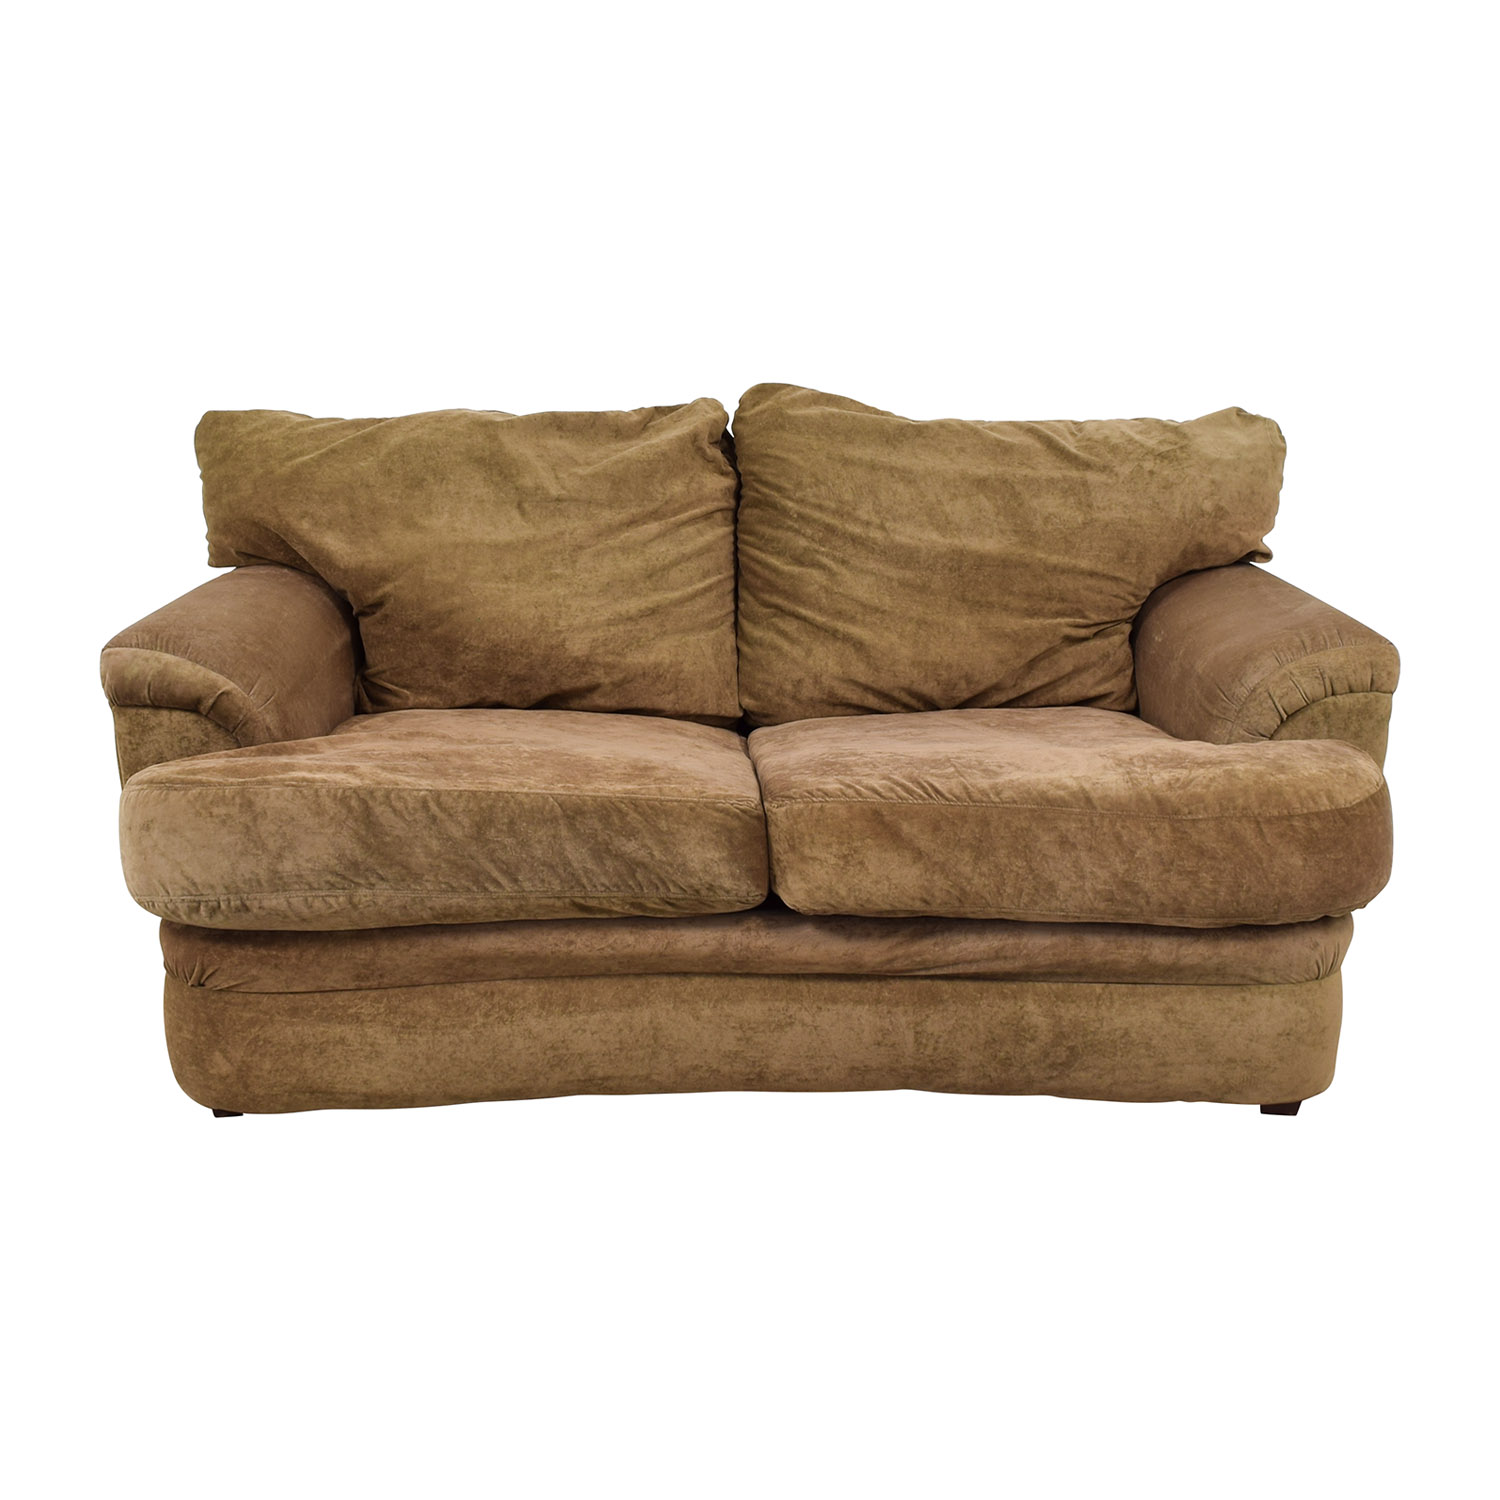 Alan White Alan White Loveseat discount